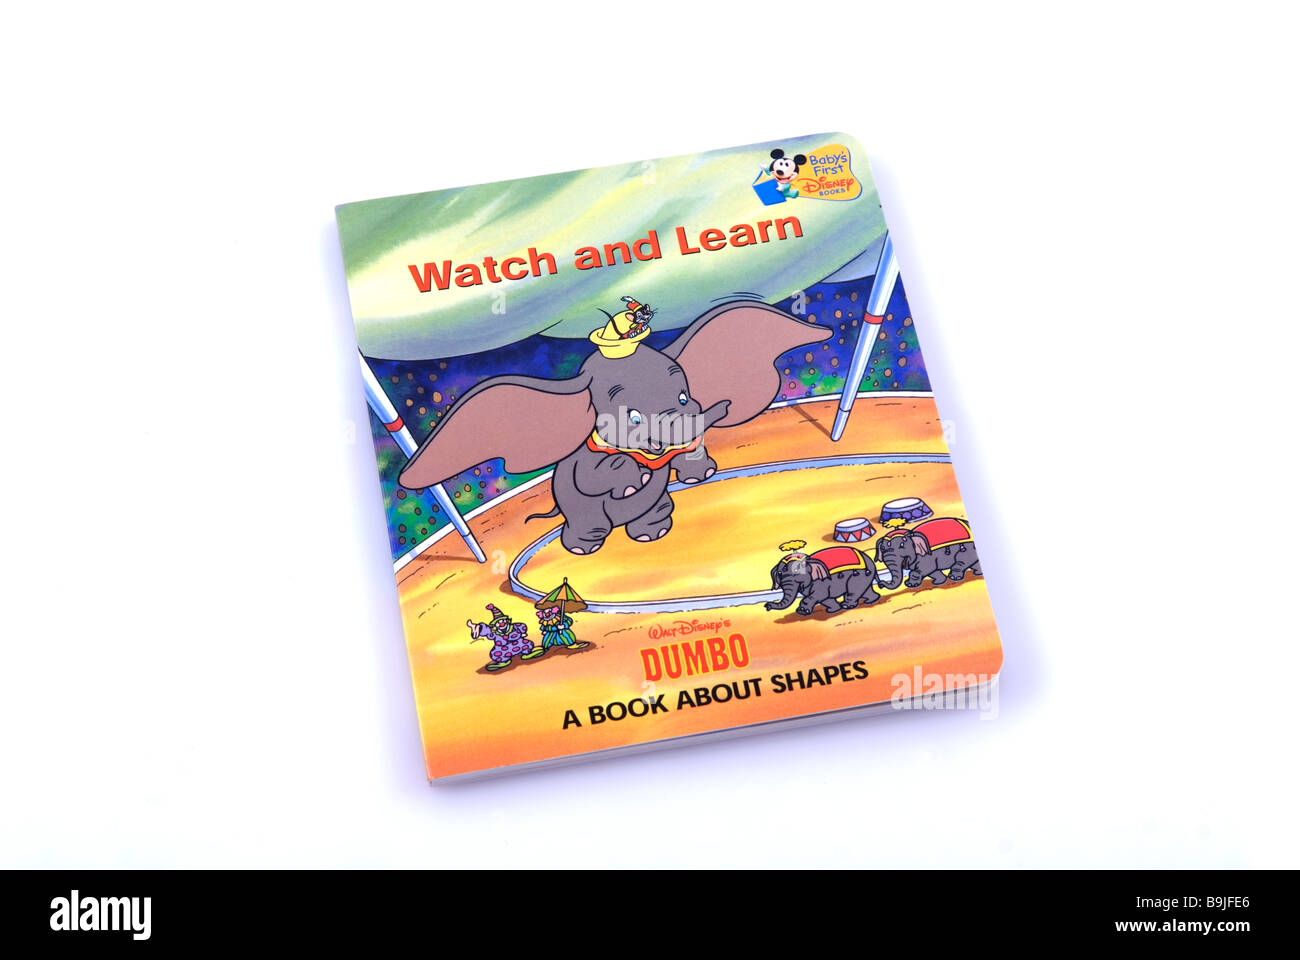 Walt Disney Character Dumbo the elephant story book isolated against a white background - Stock Image